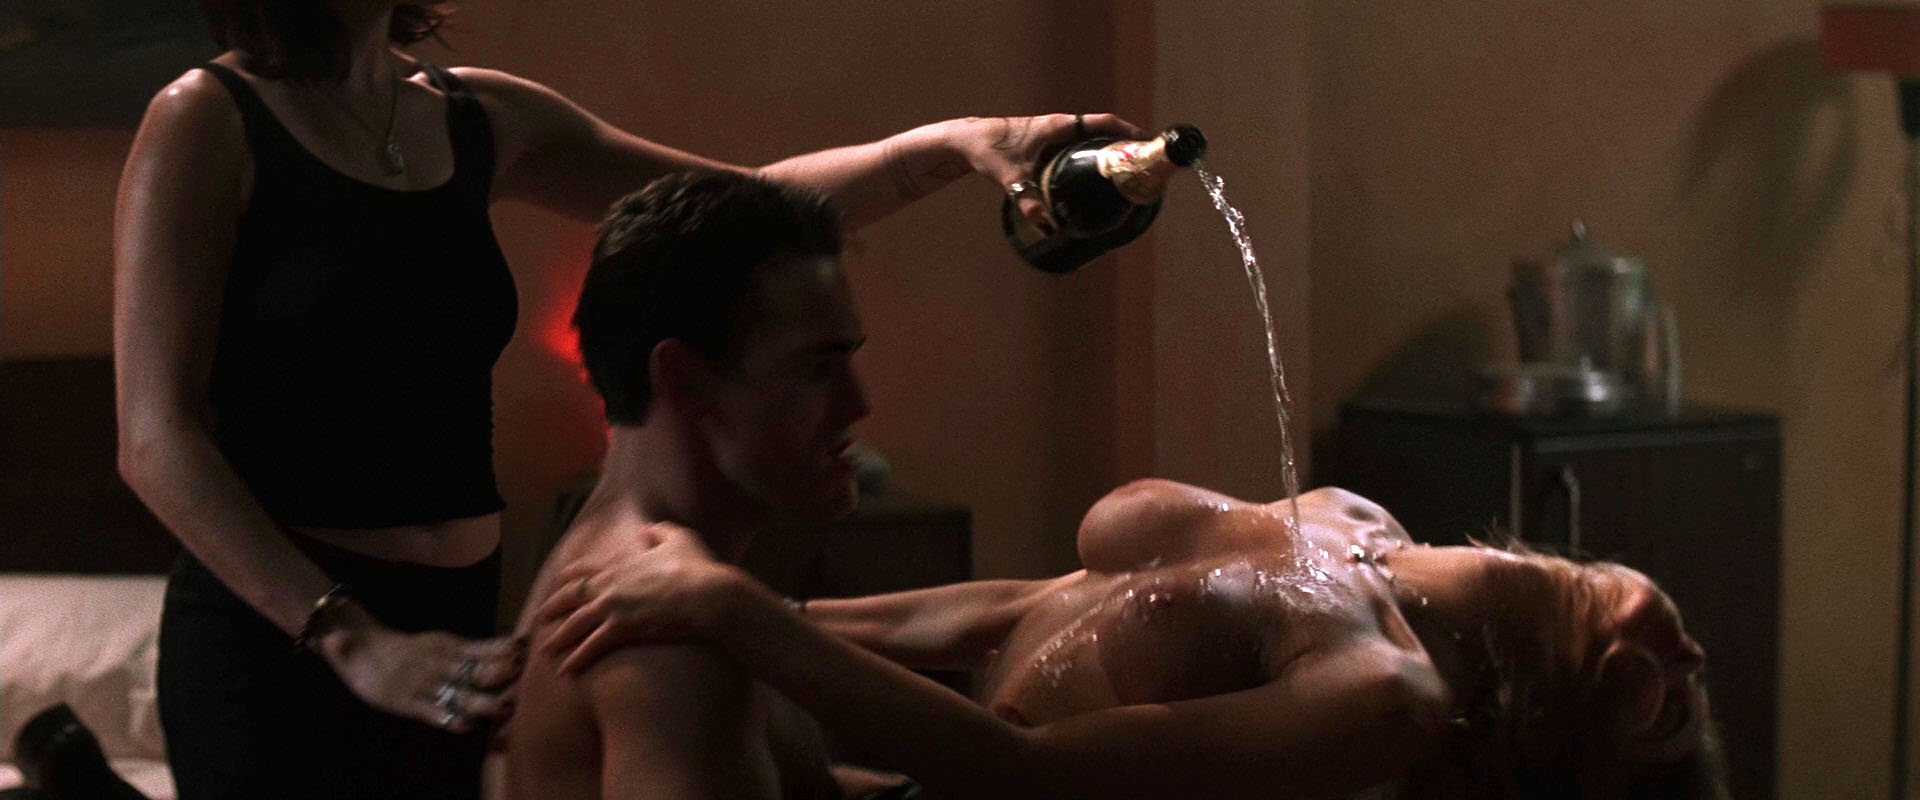 Neve campbell wild things sex scene